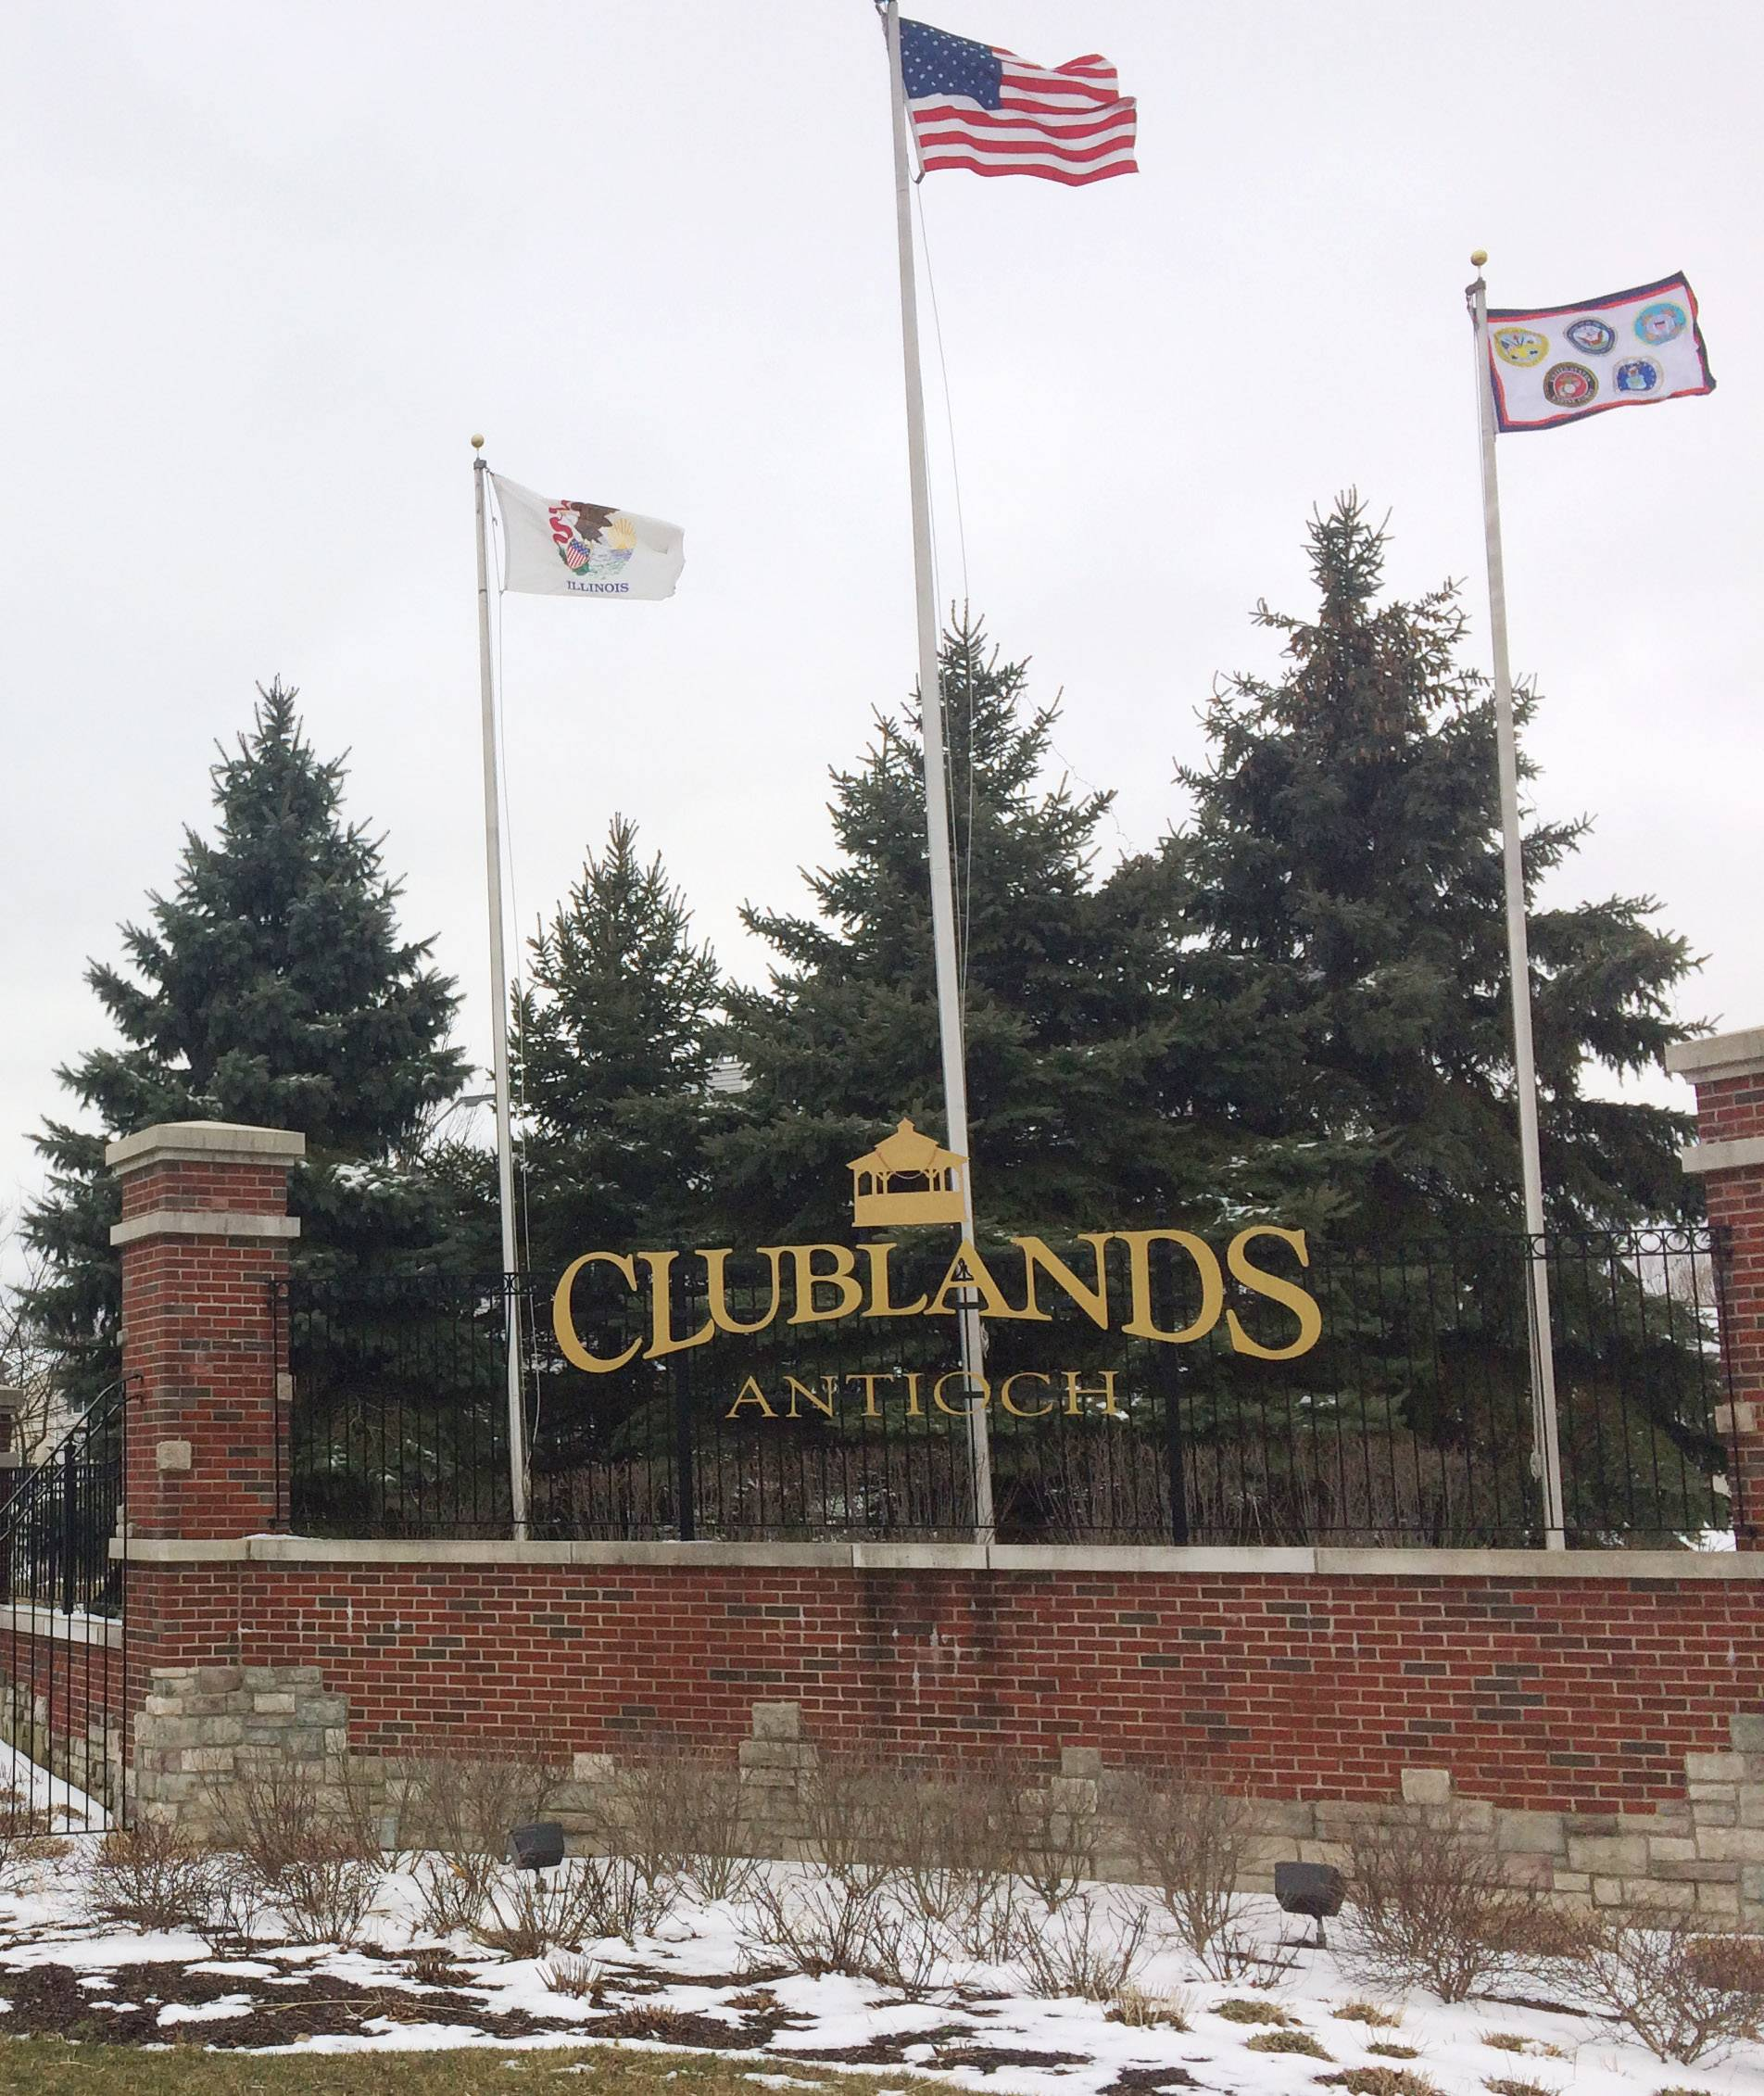 After being idled by the bankruptcy of the original builder in 2007, the huge Clublands of Antioch subdivision is experiencing a revival with a plan to refresh Heartland Park and continued construction of new homes.